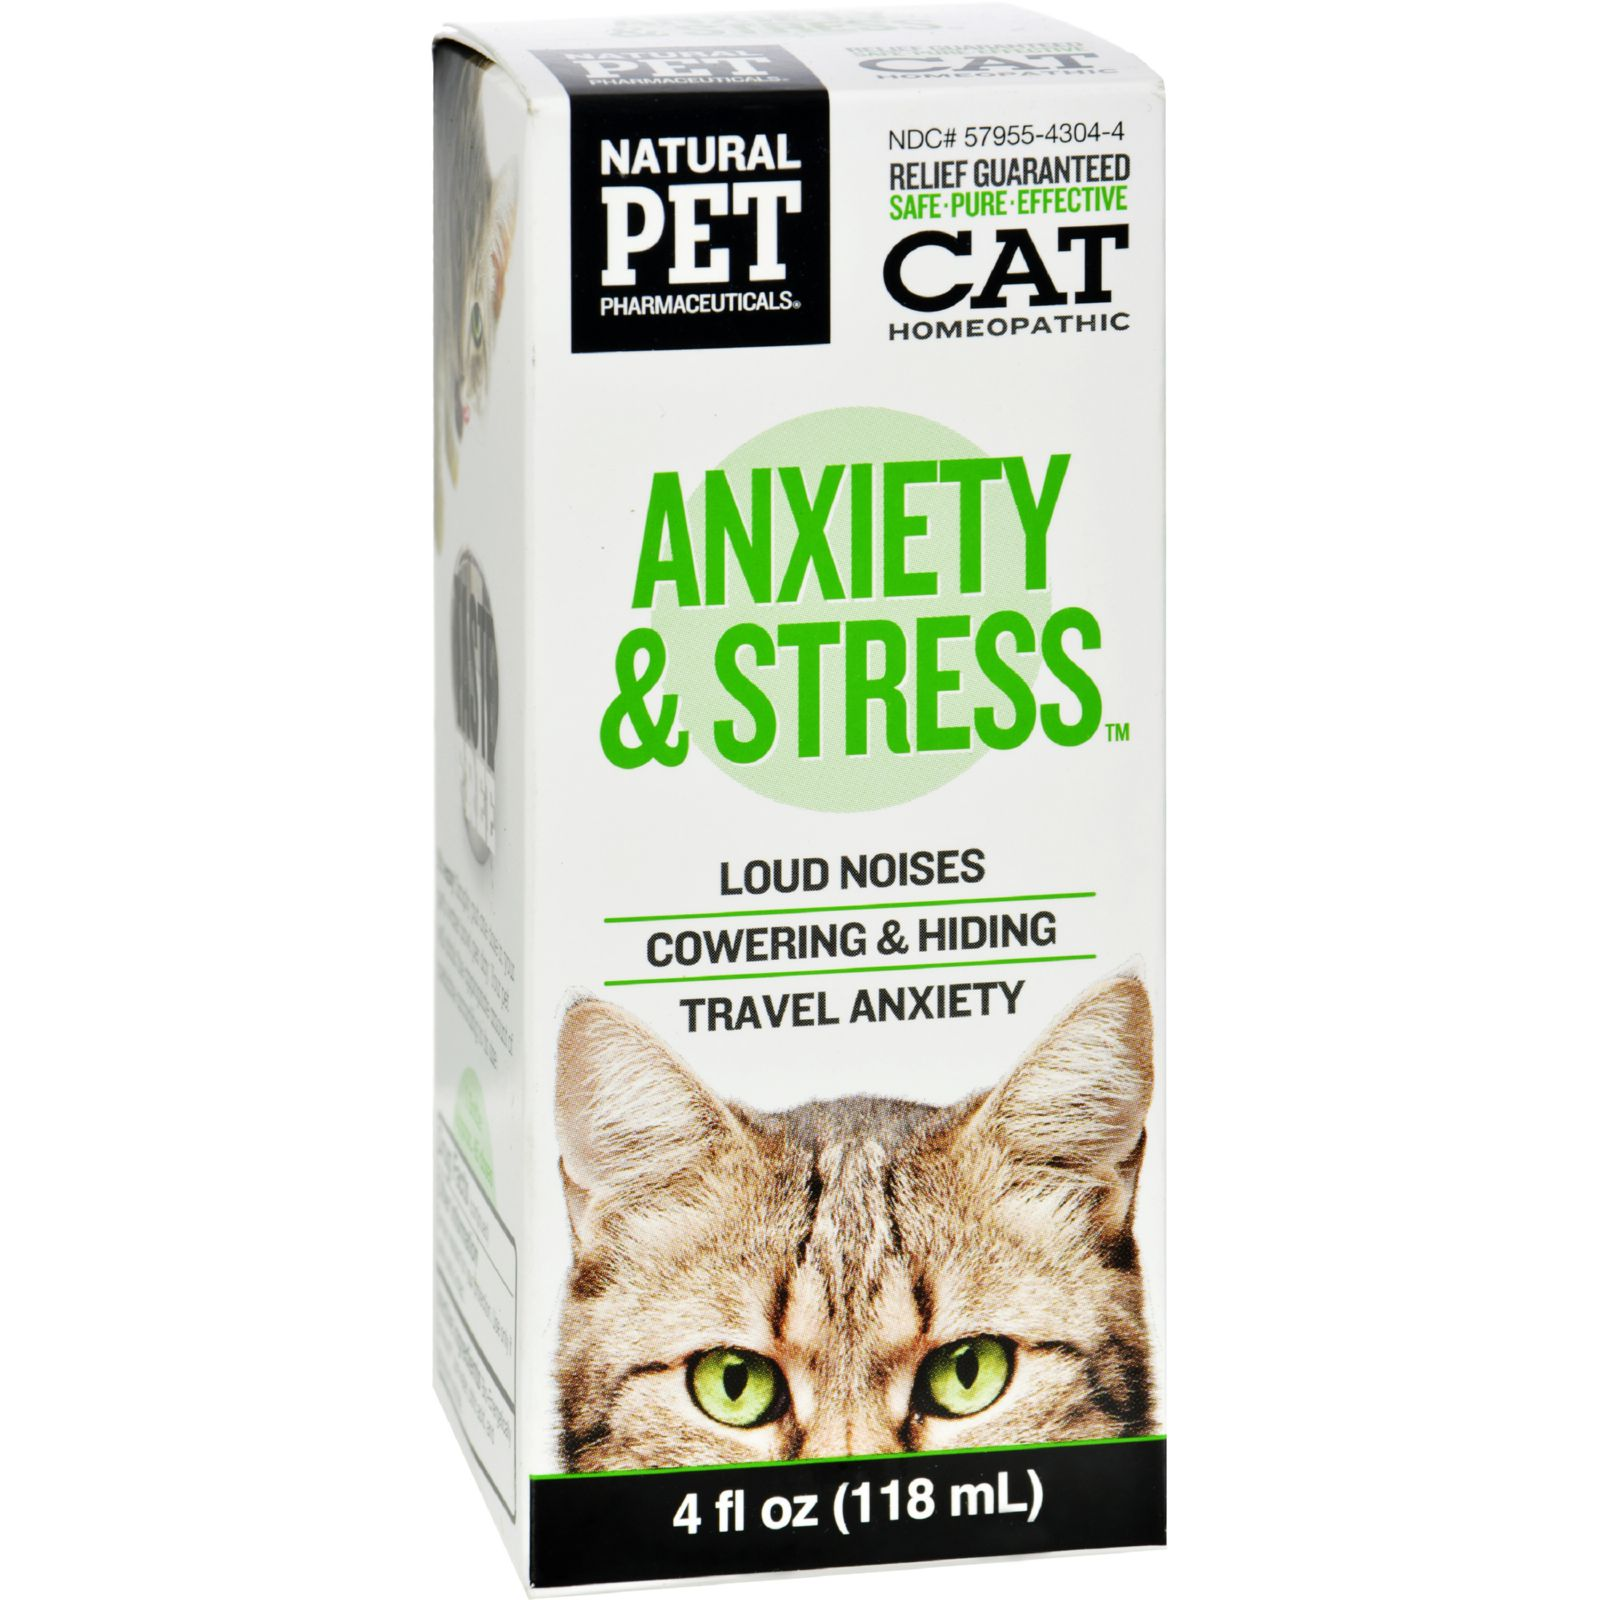 King Bio Homeopathic Natural Pet Cat - Anxiety And Stress - 4 Oz